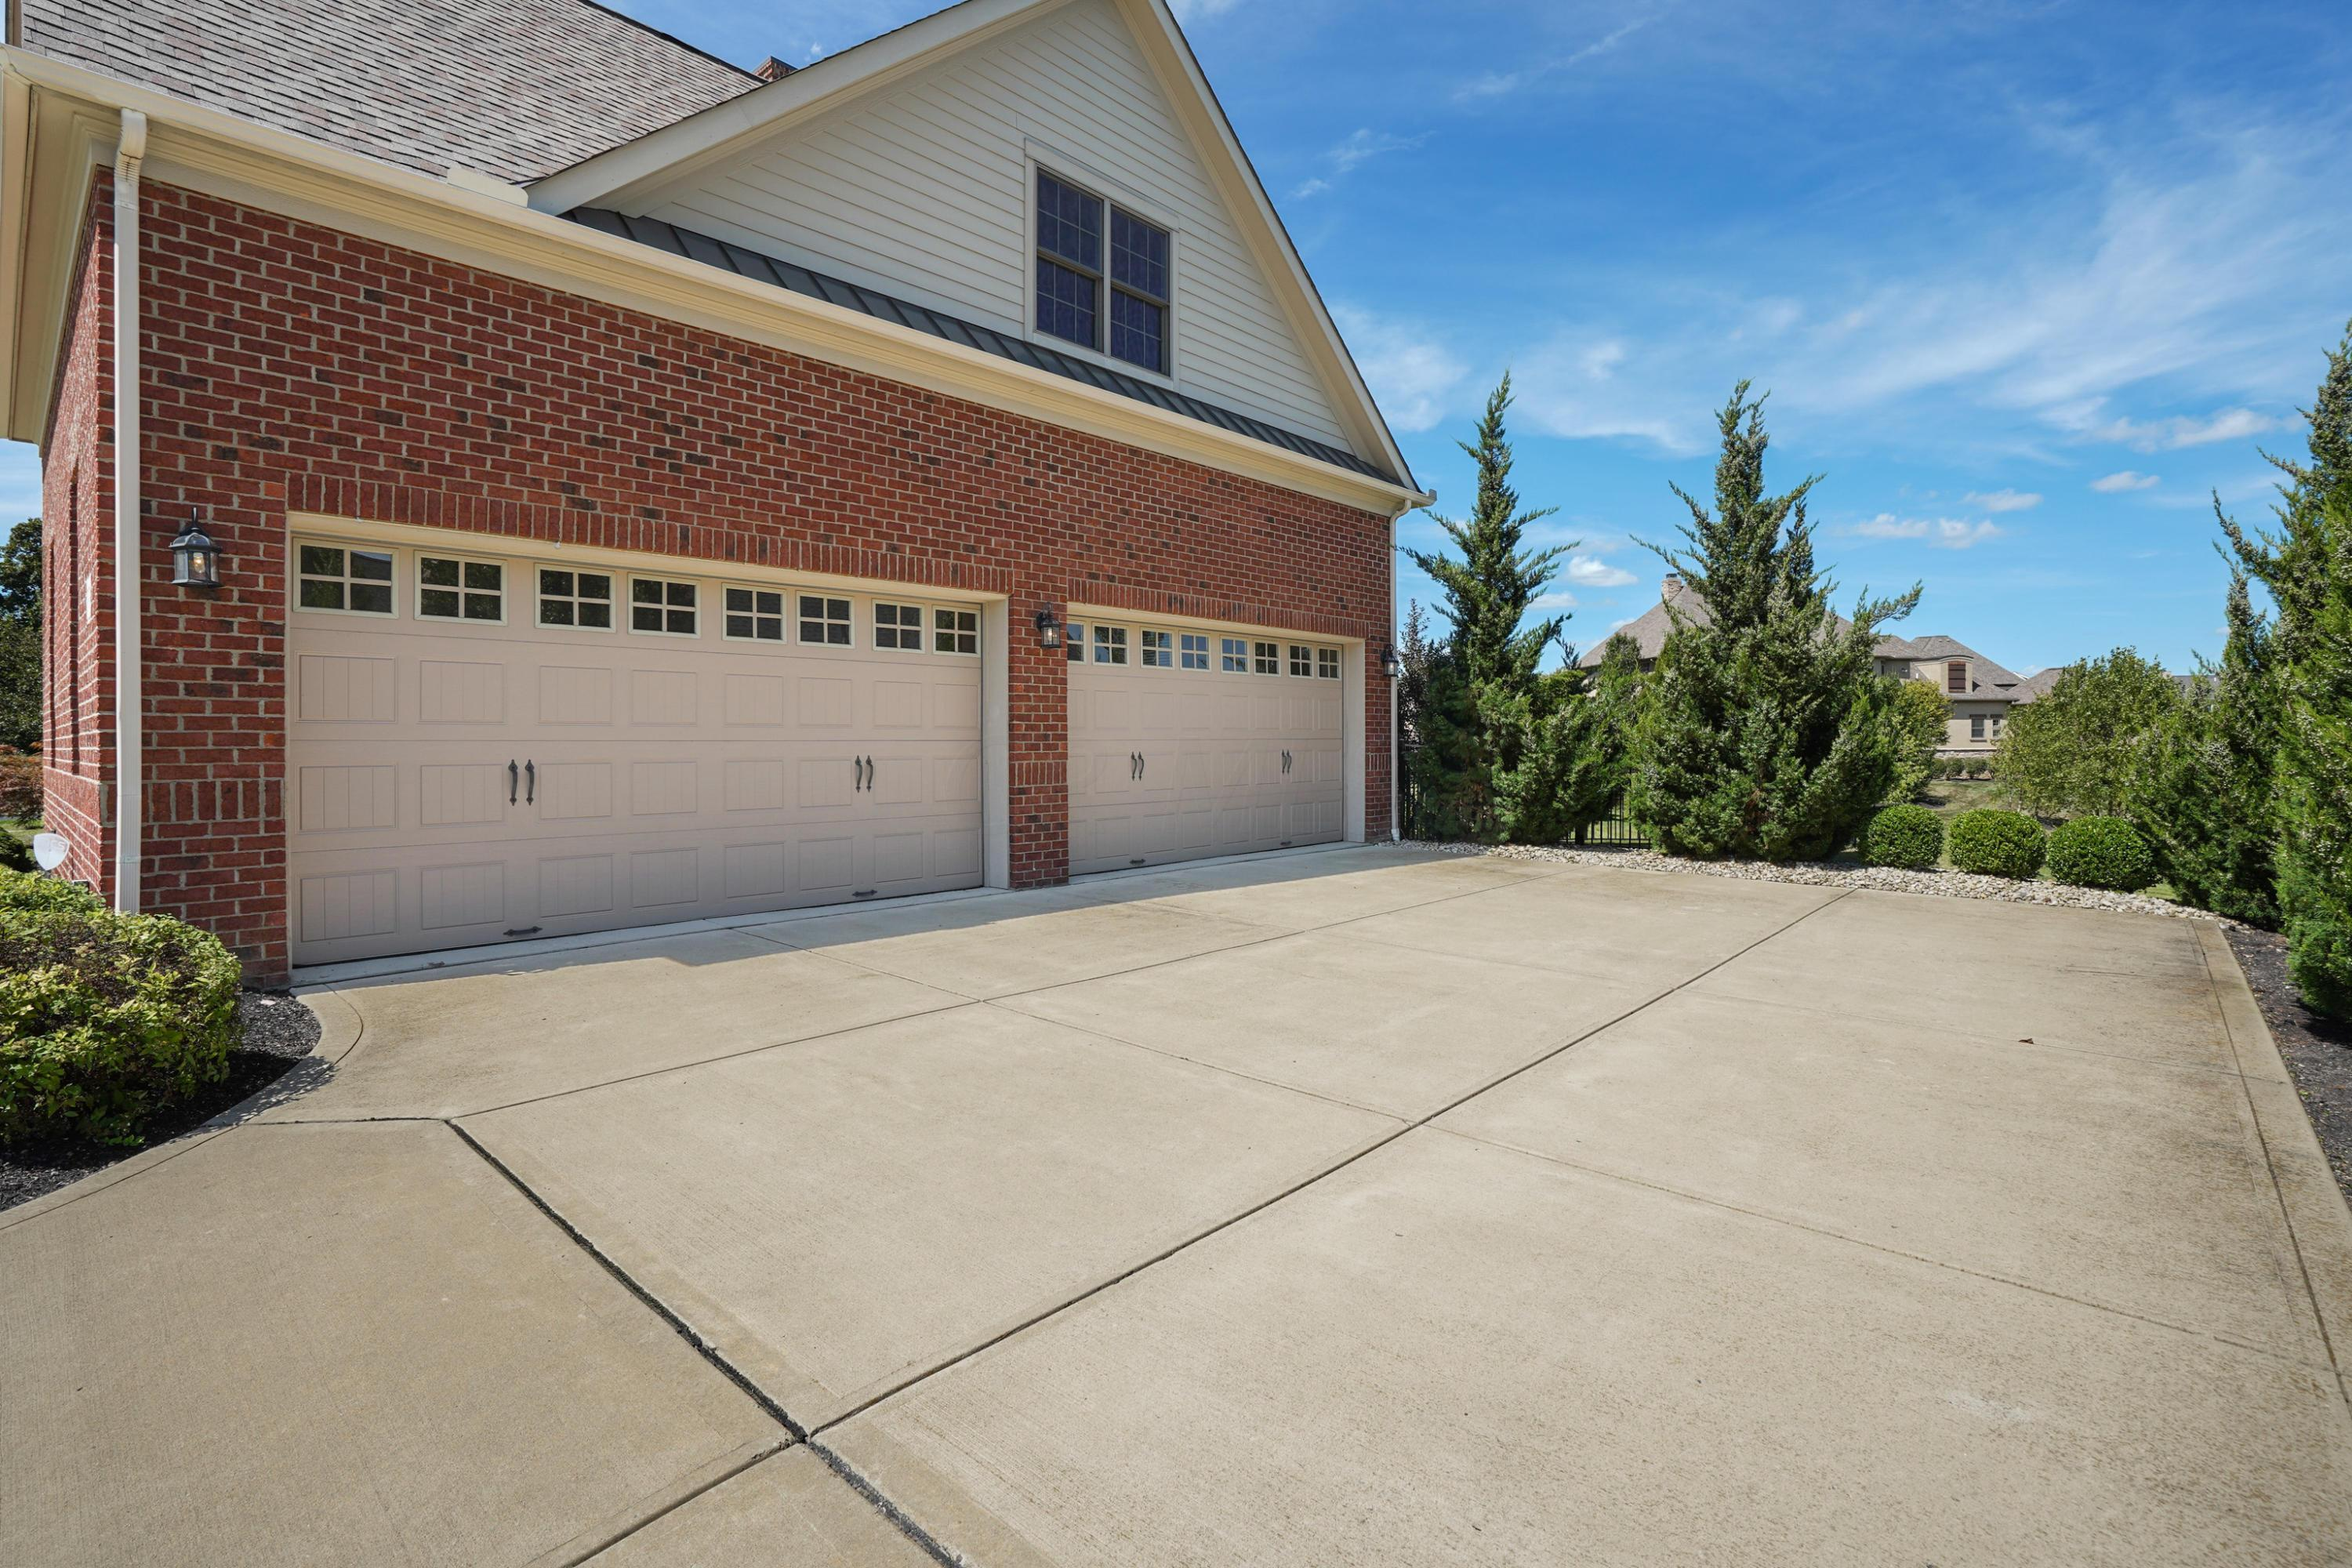 7970 Ginger Place, Dublin, Ohio 43017, 5 Bedrooms Bedrooms, ,6 BathroomsBathrooms,Residential,For Sale,Ginger,220031413